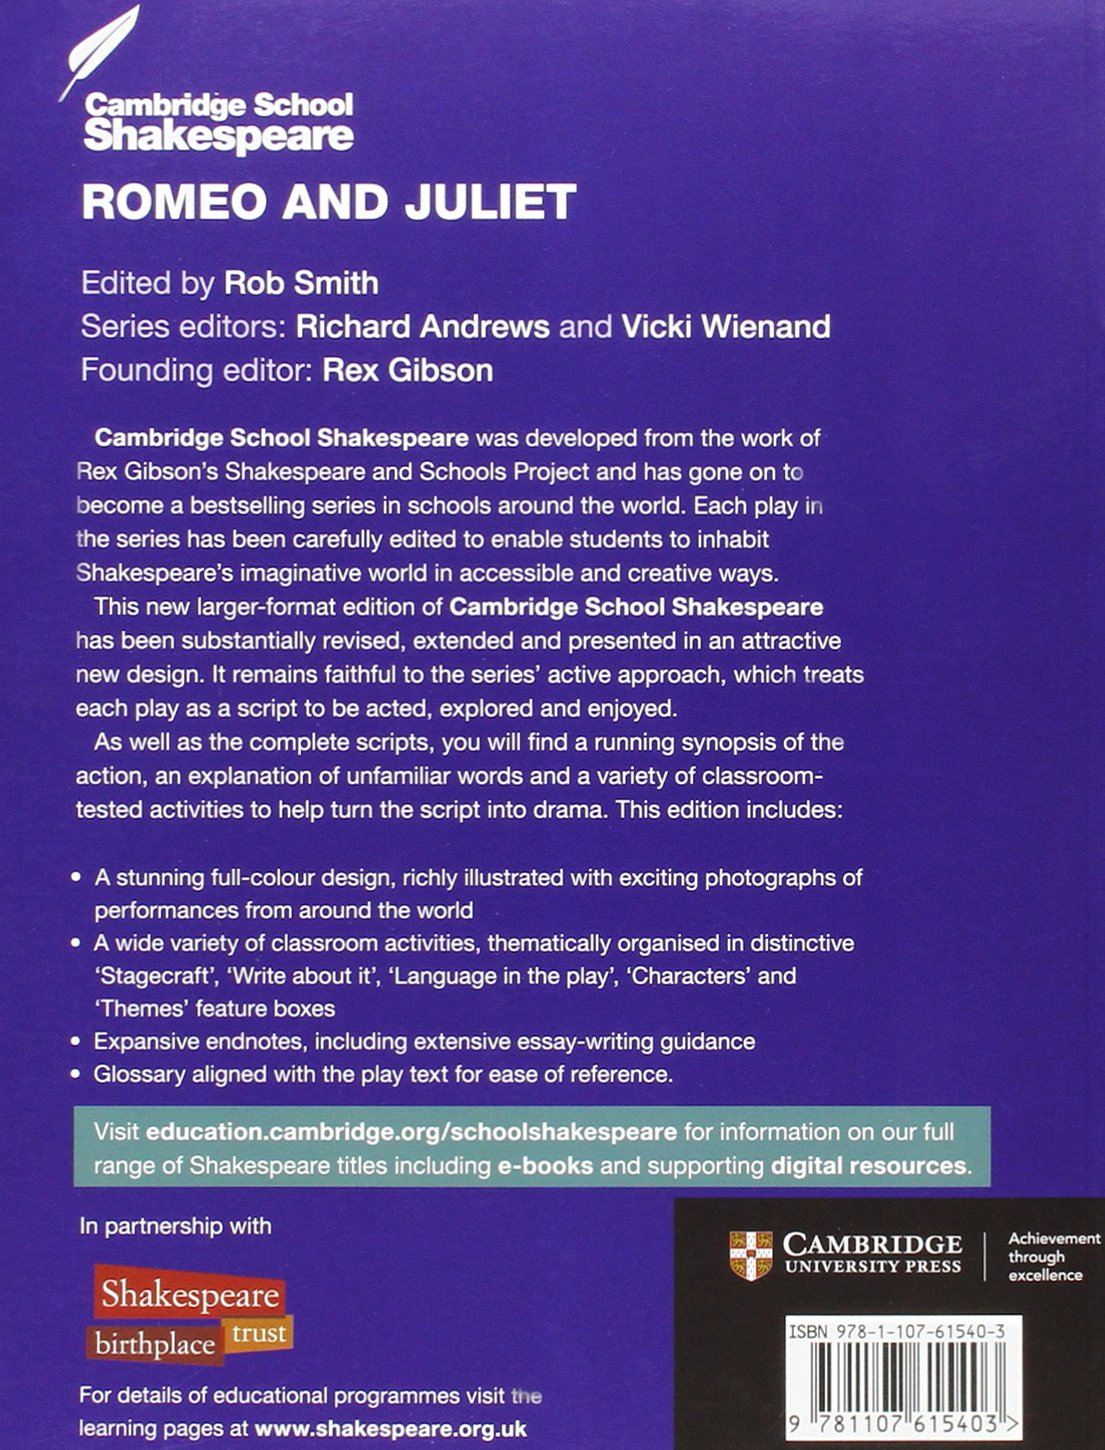 romeo and juliet cambridge school shakespeare amazon co uk romeo and juliet cambridge school shakespeare amazon co uk william shakespeare rex gibson robert smith richard wienand vicki wienand books